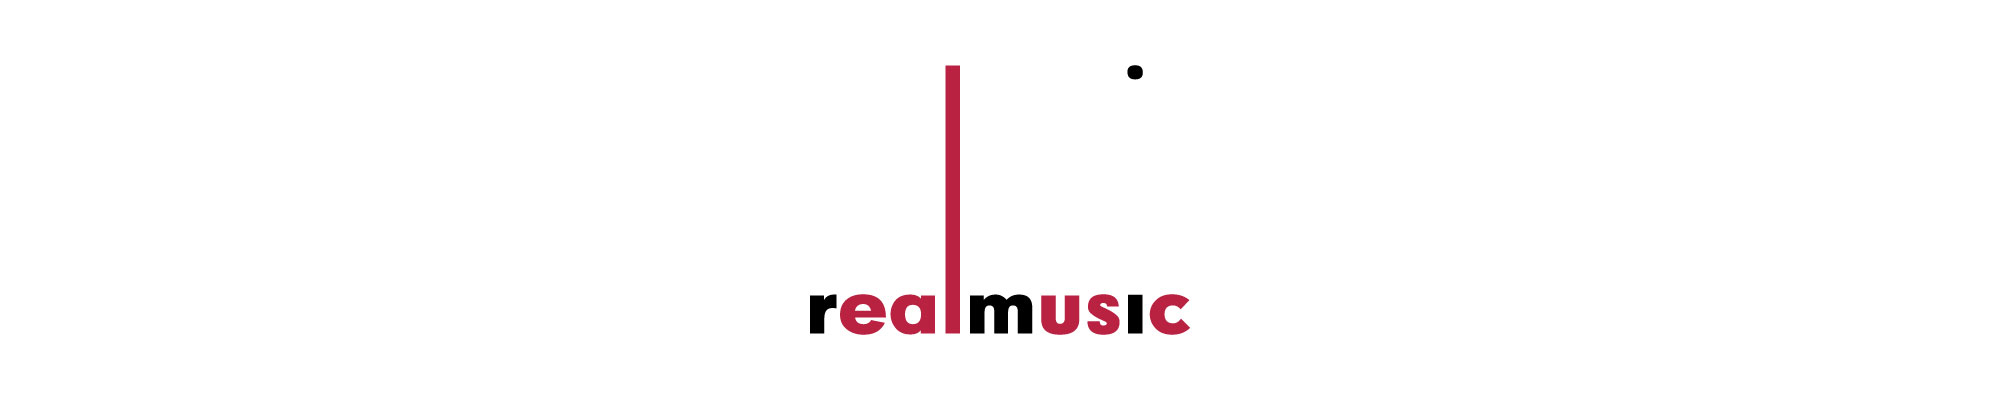 Real Music logo